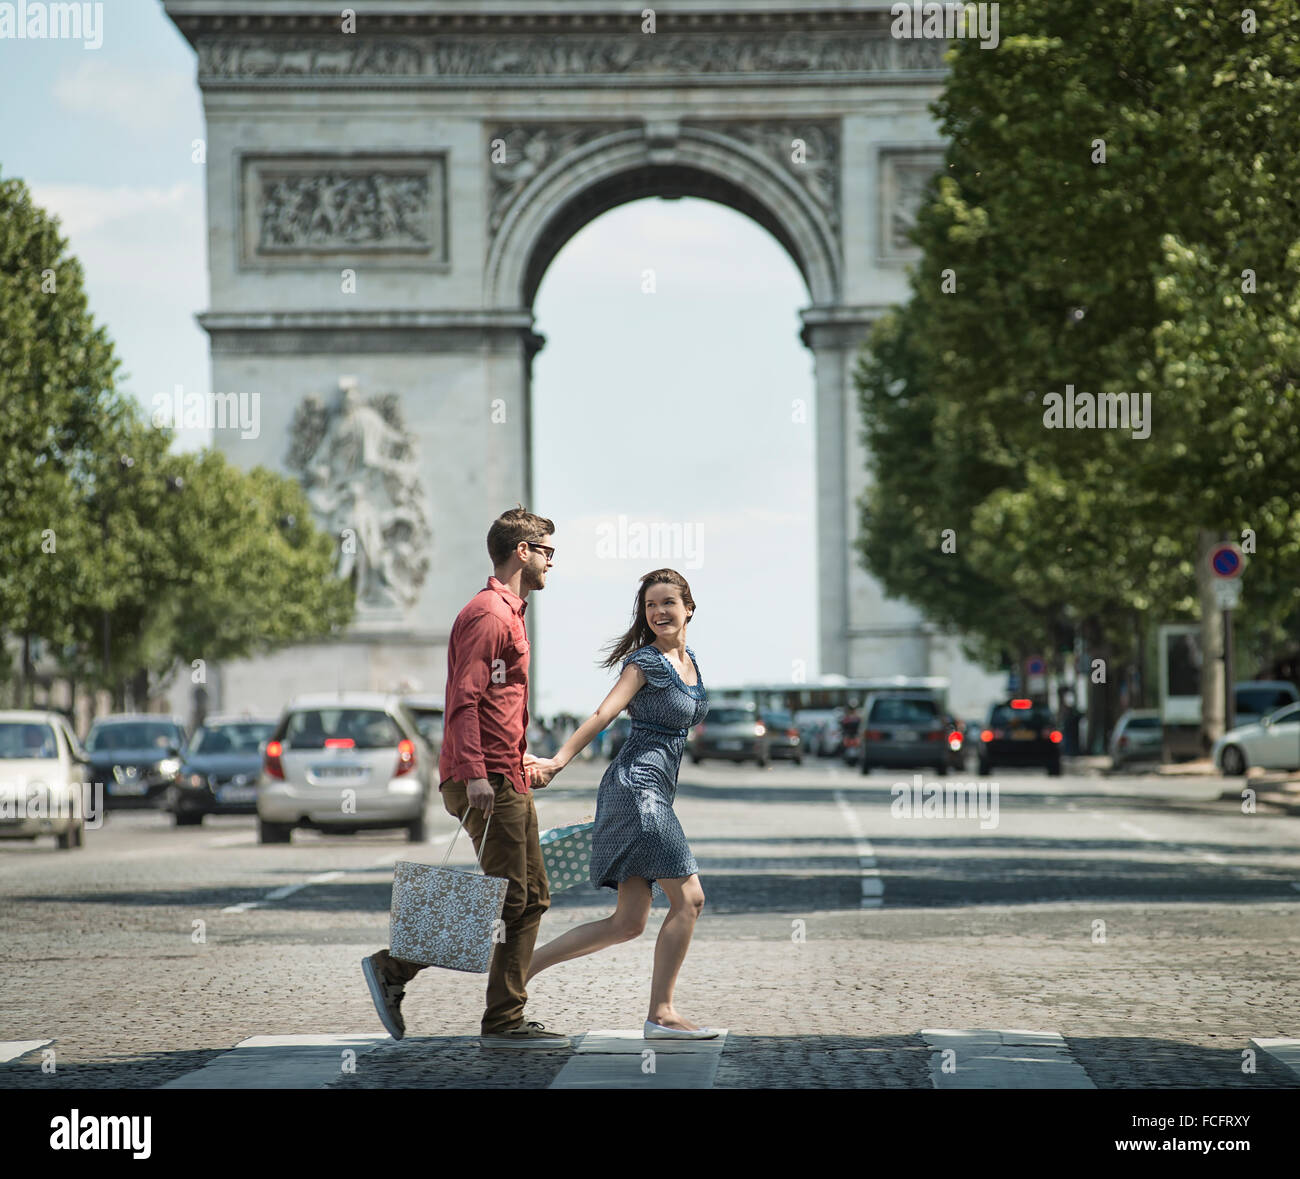 A couple hand in hand carrying shopping bags and crossing the road by a historic monument - Stock Image